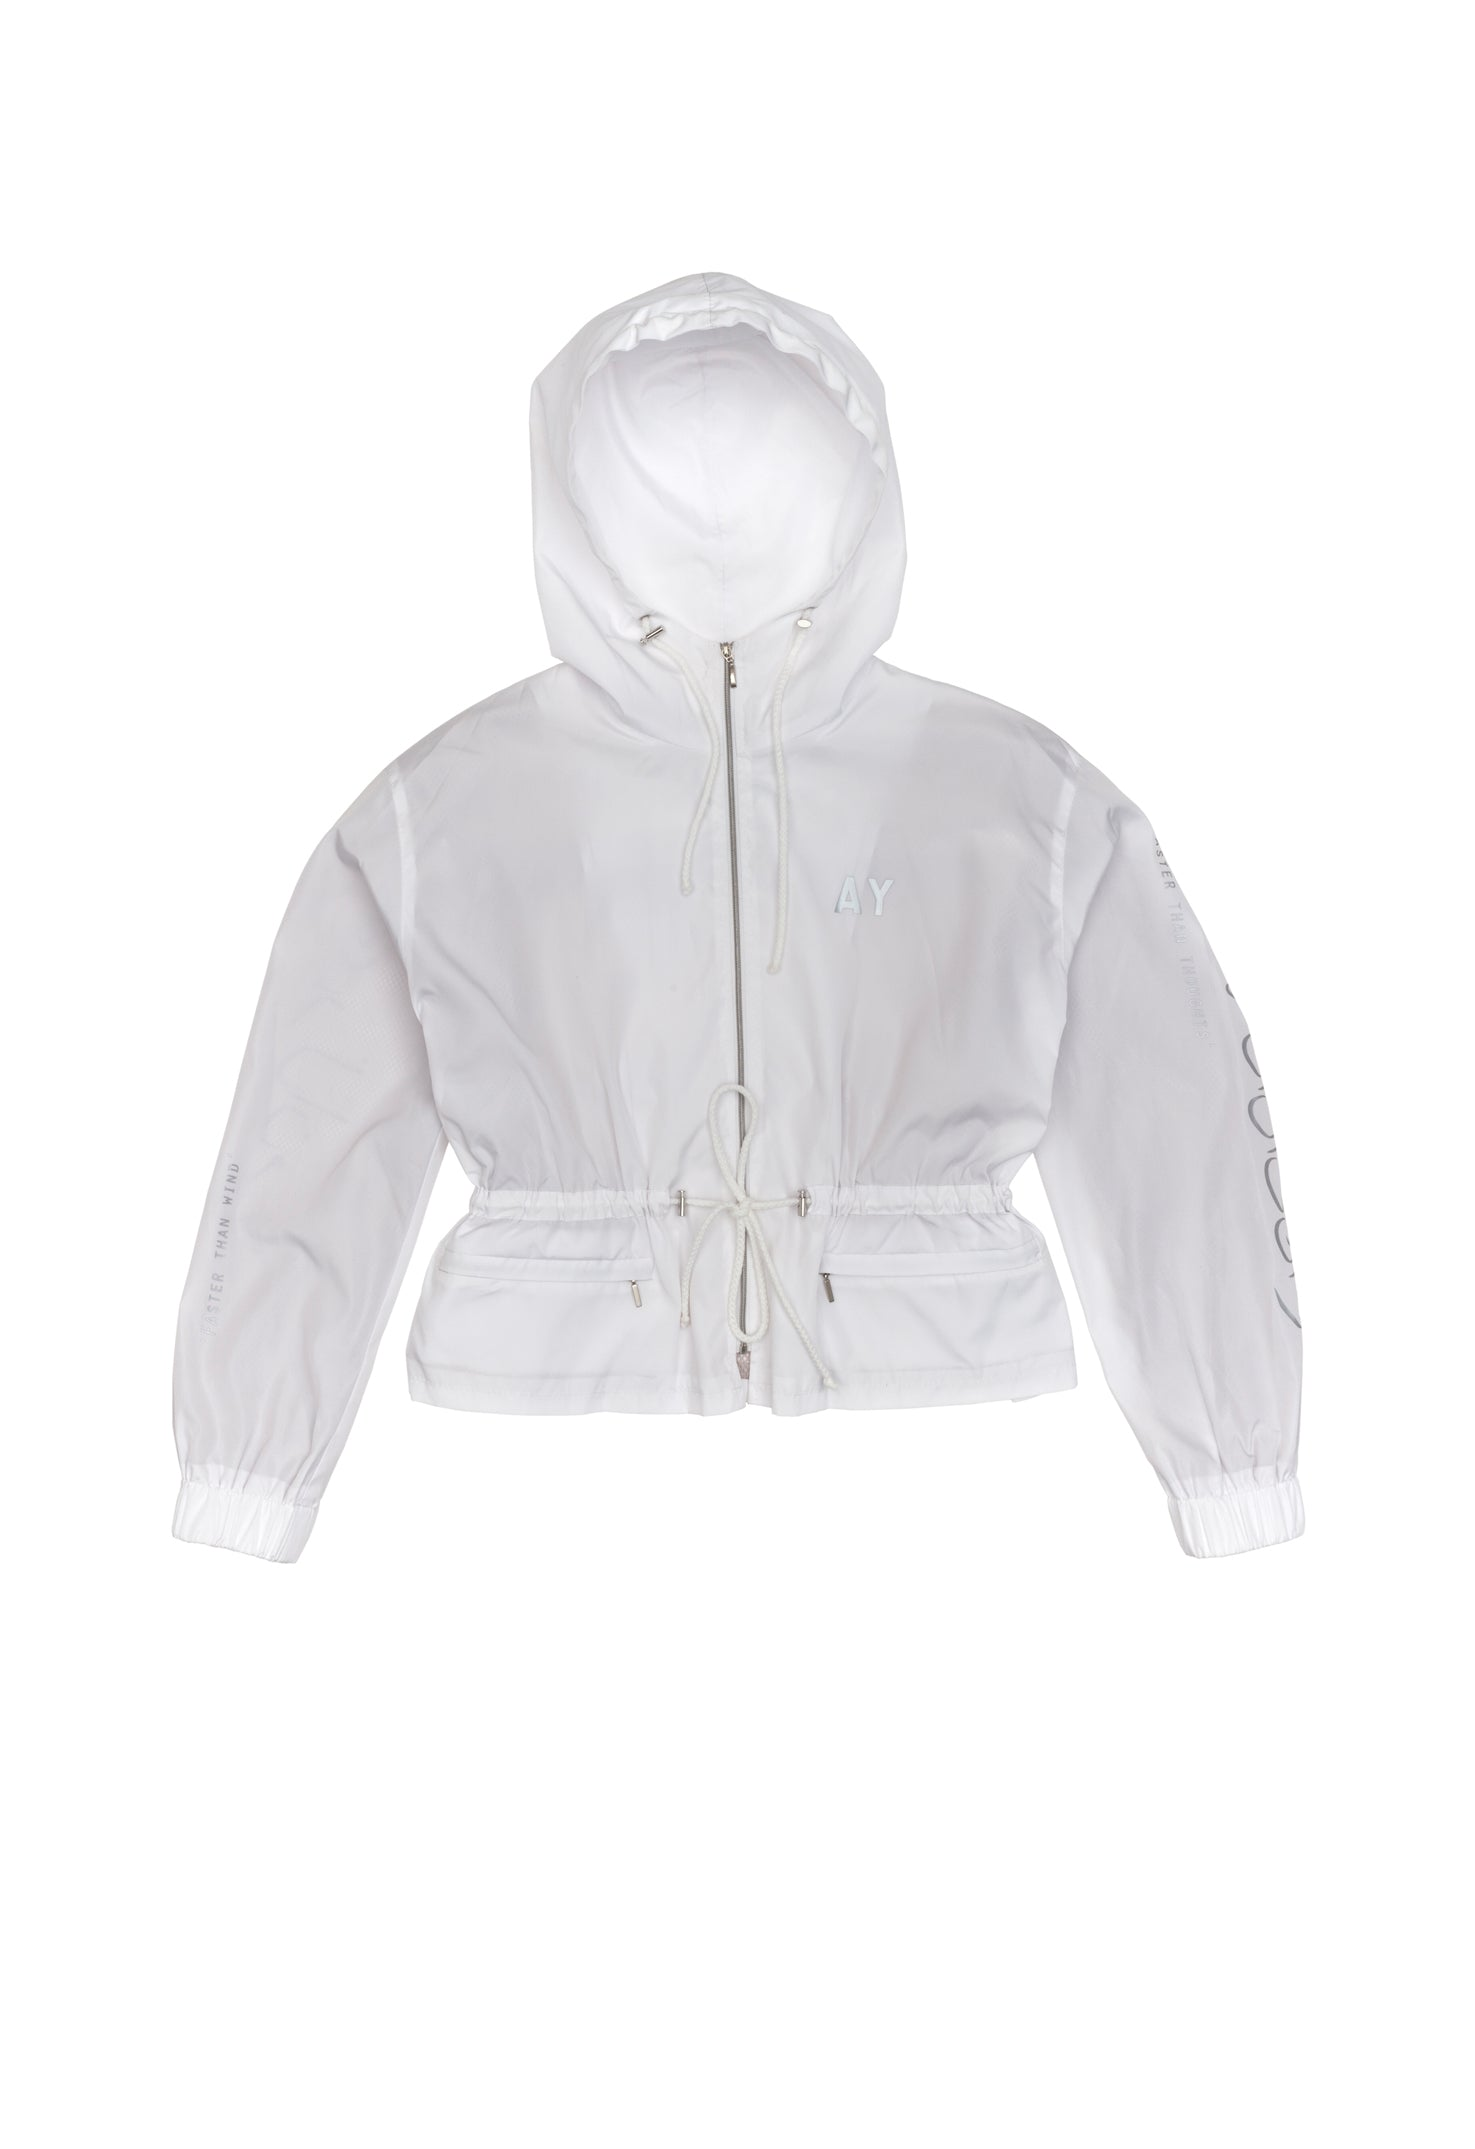 Arab White Track Top